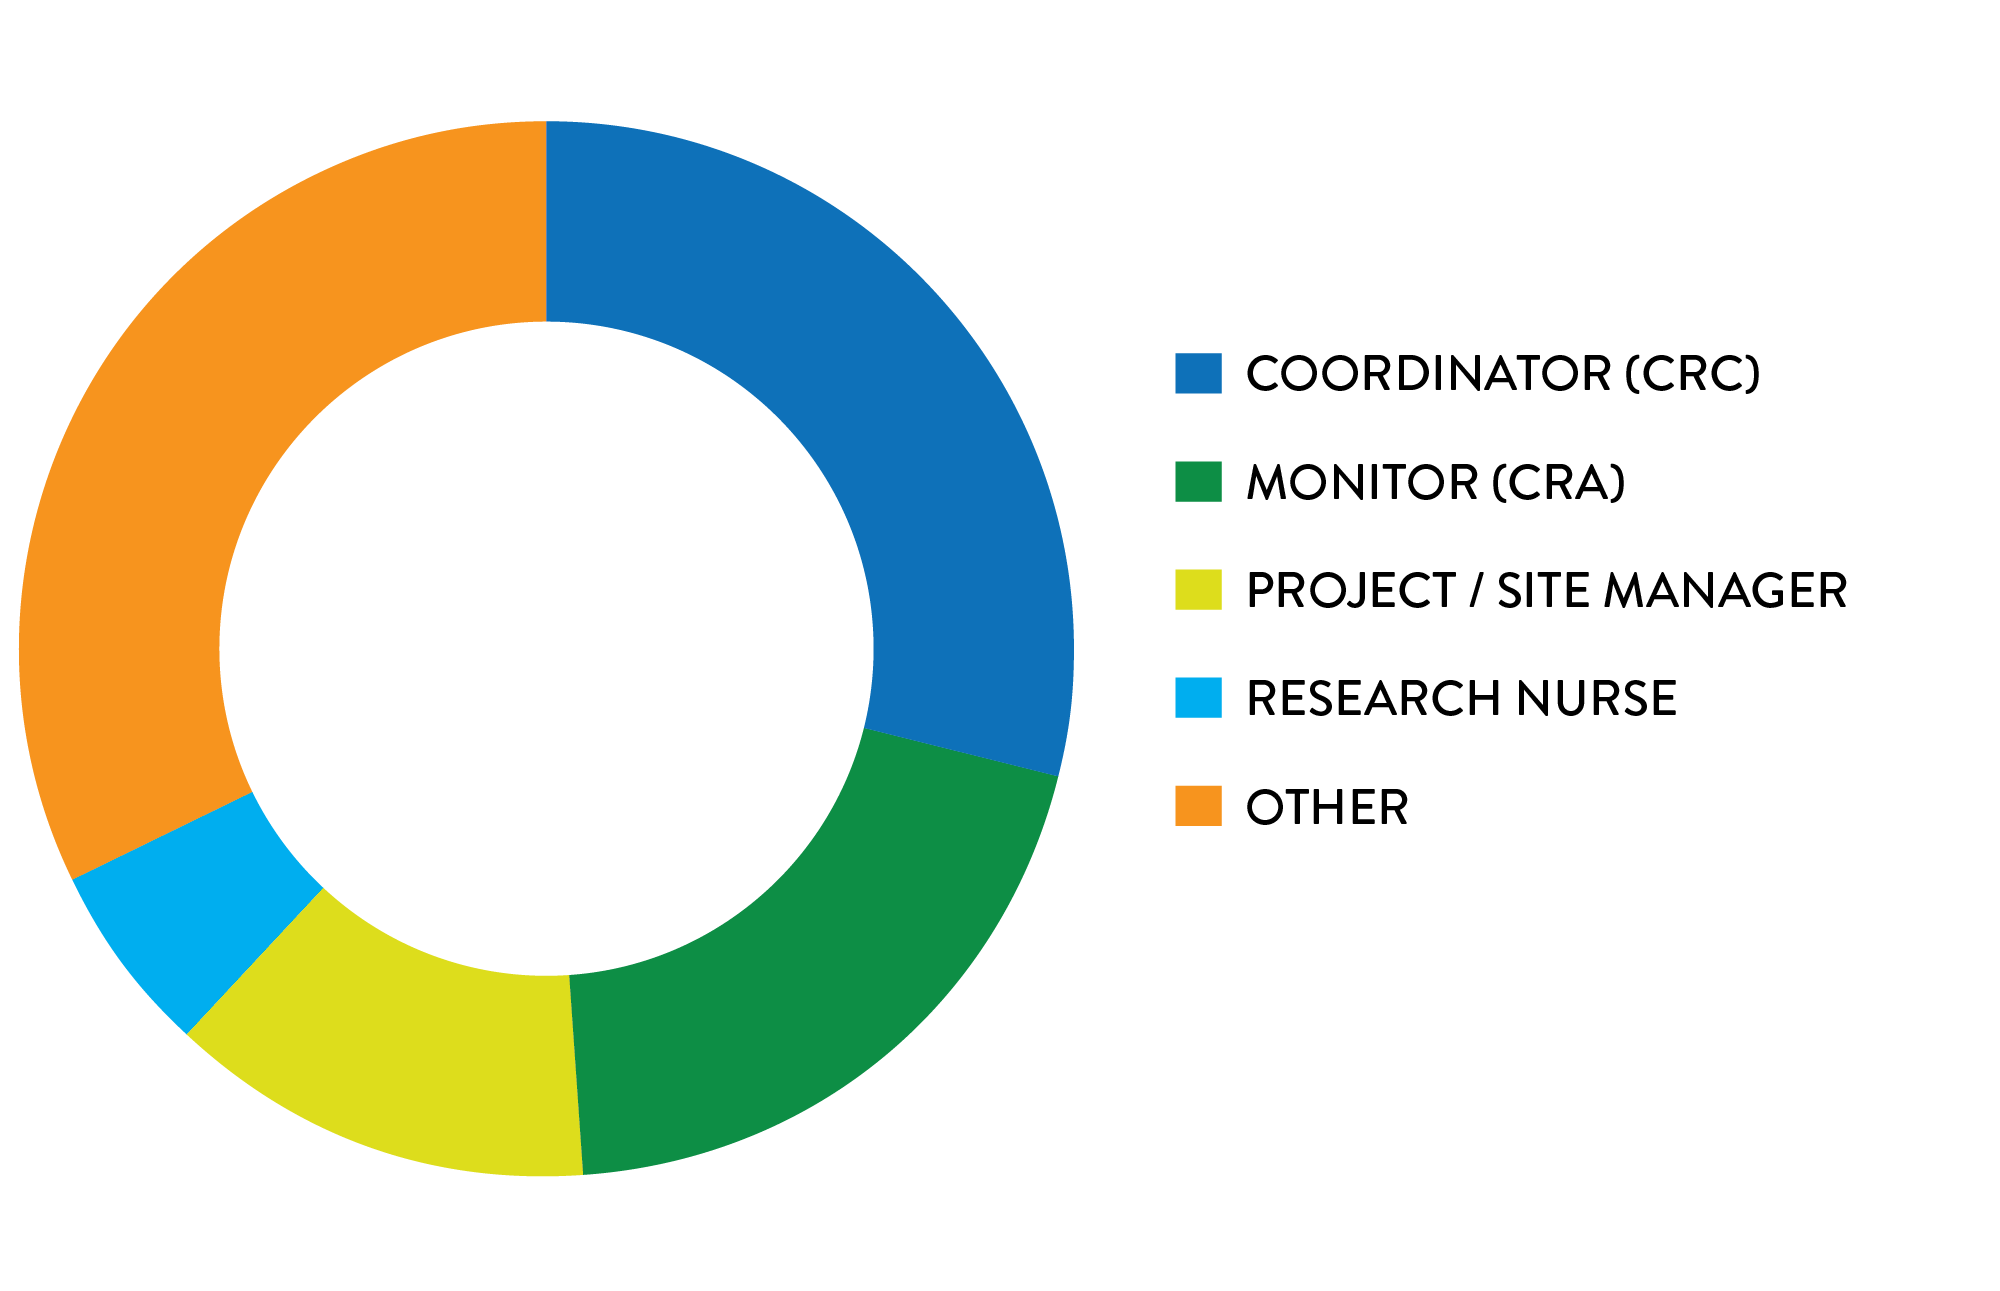 ACRP Members by Primary Role